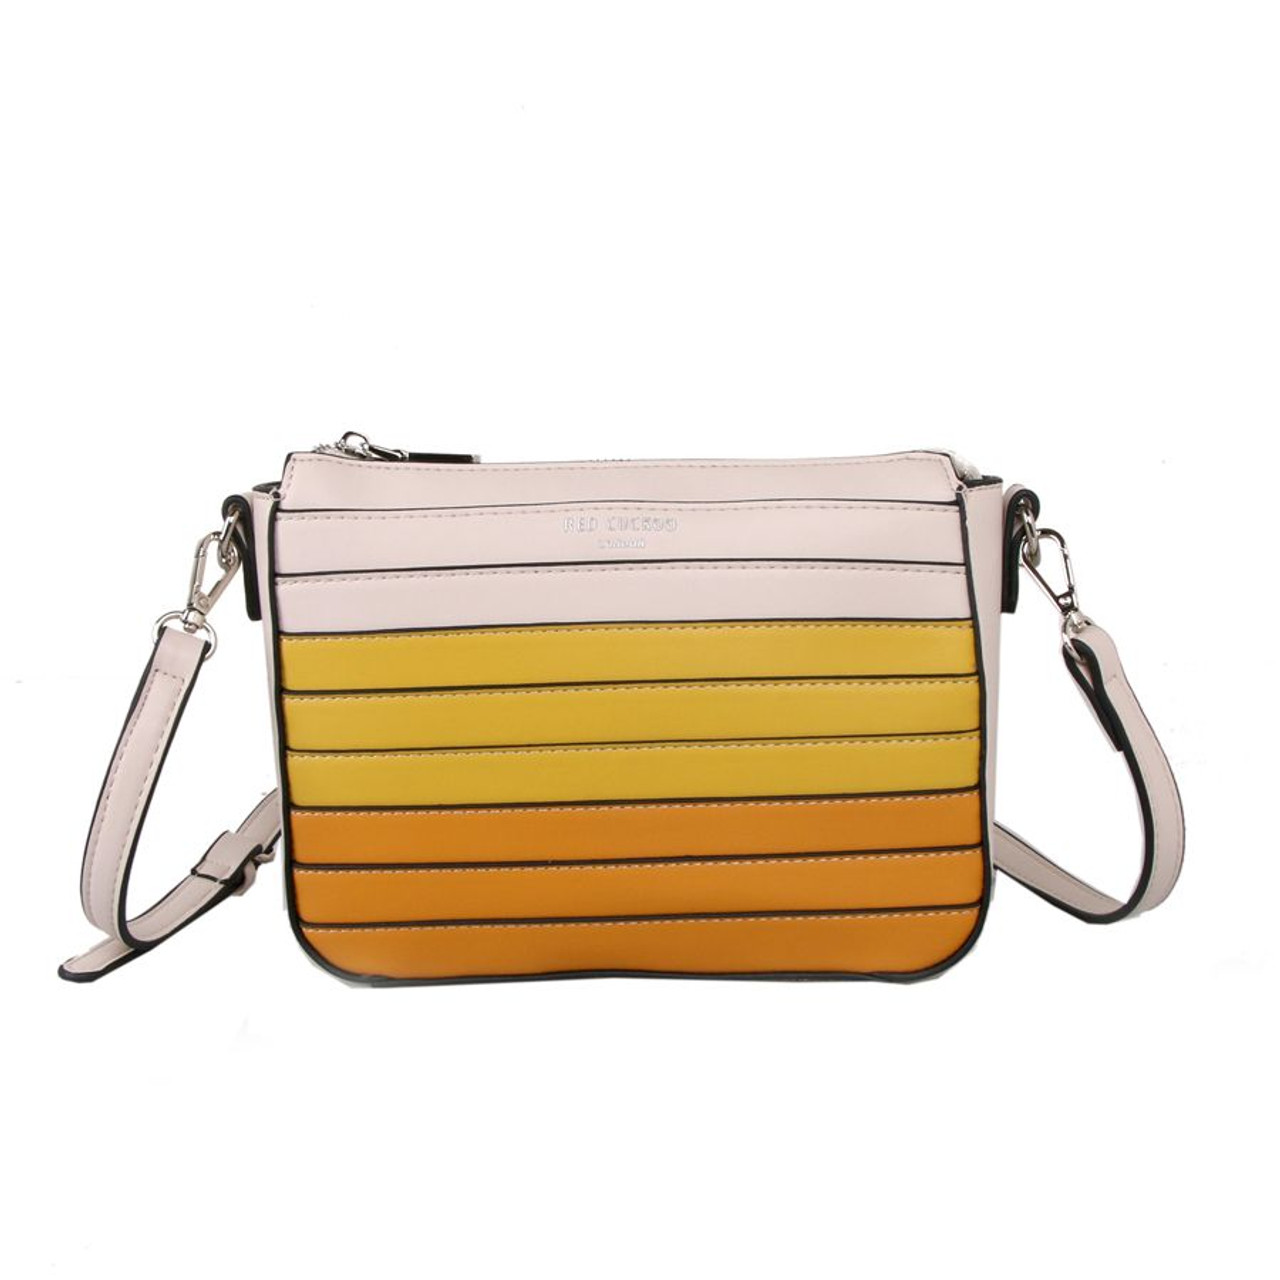 d714f9994263 Red Cuckoo Yellow Cross Body Bag with Ombre Gradient Effect